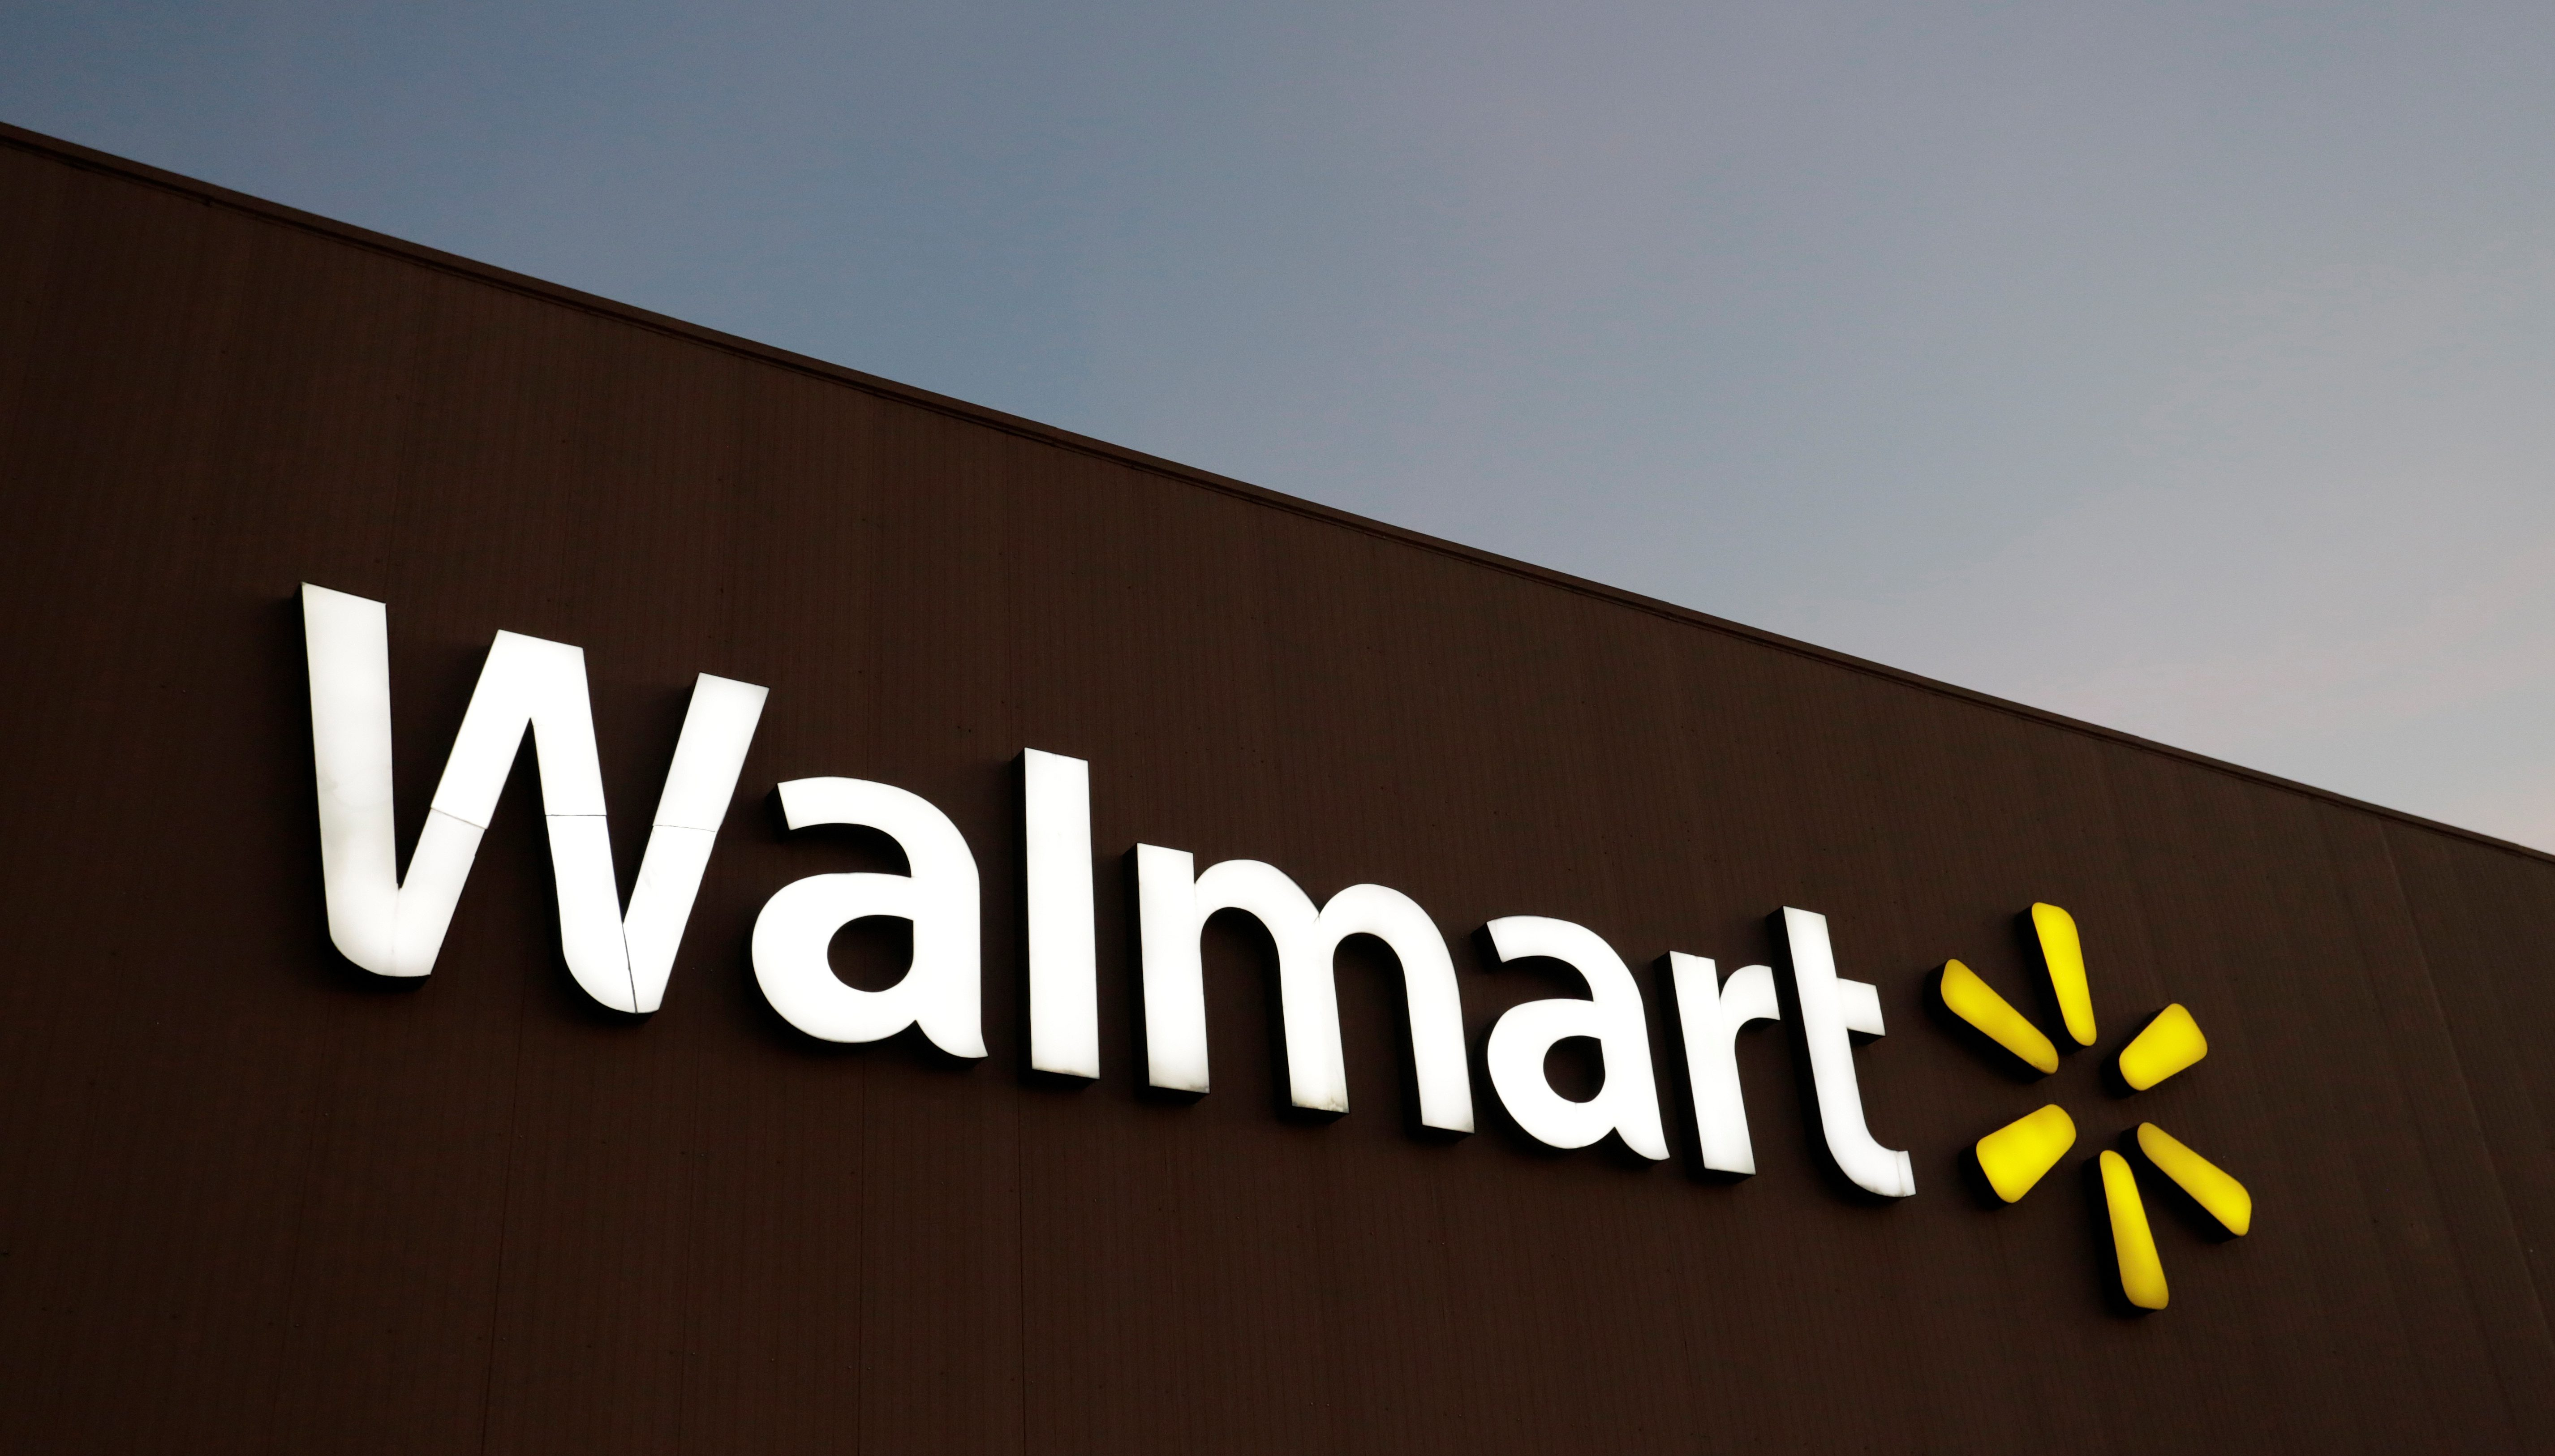 The logo of Walmart is pictured at one of their stores in Monterrey, Mexico March 6, 2017. Picture taken March 6, 2017. REUTERS/Daniel Becerril - RC1FE643C9C0